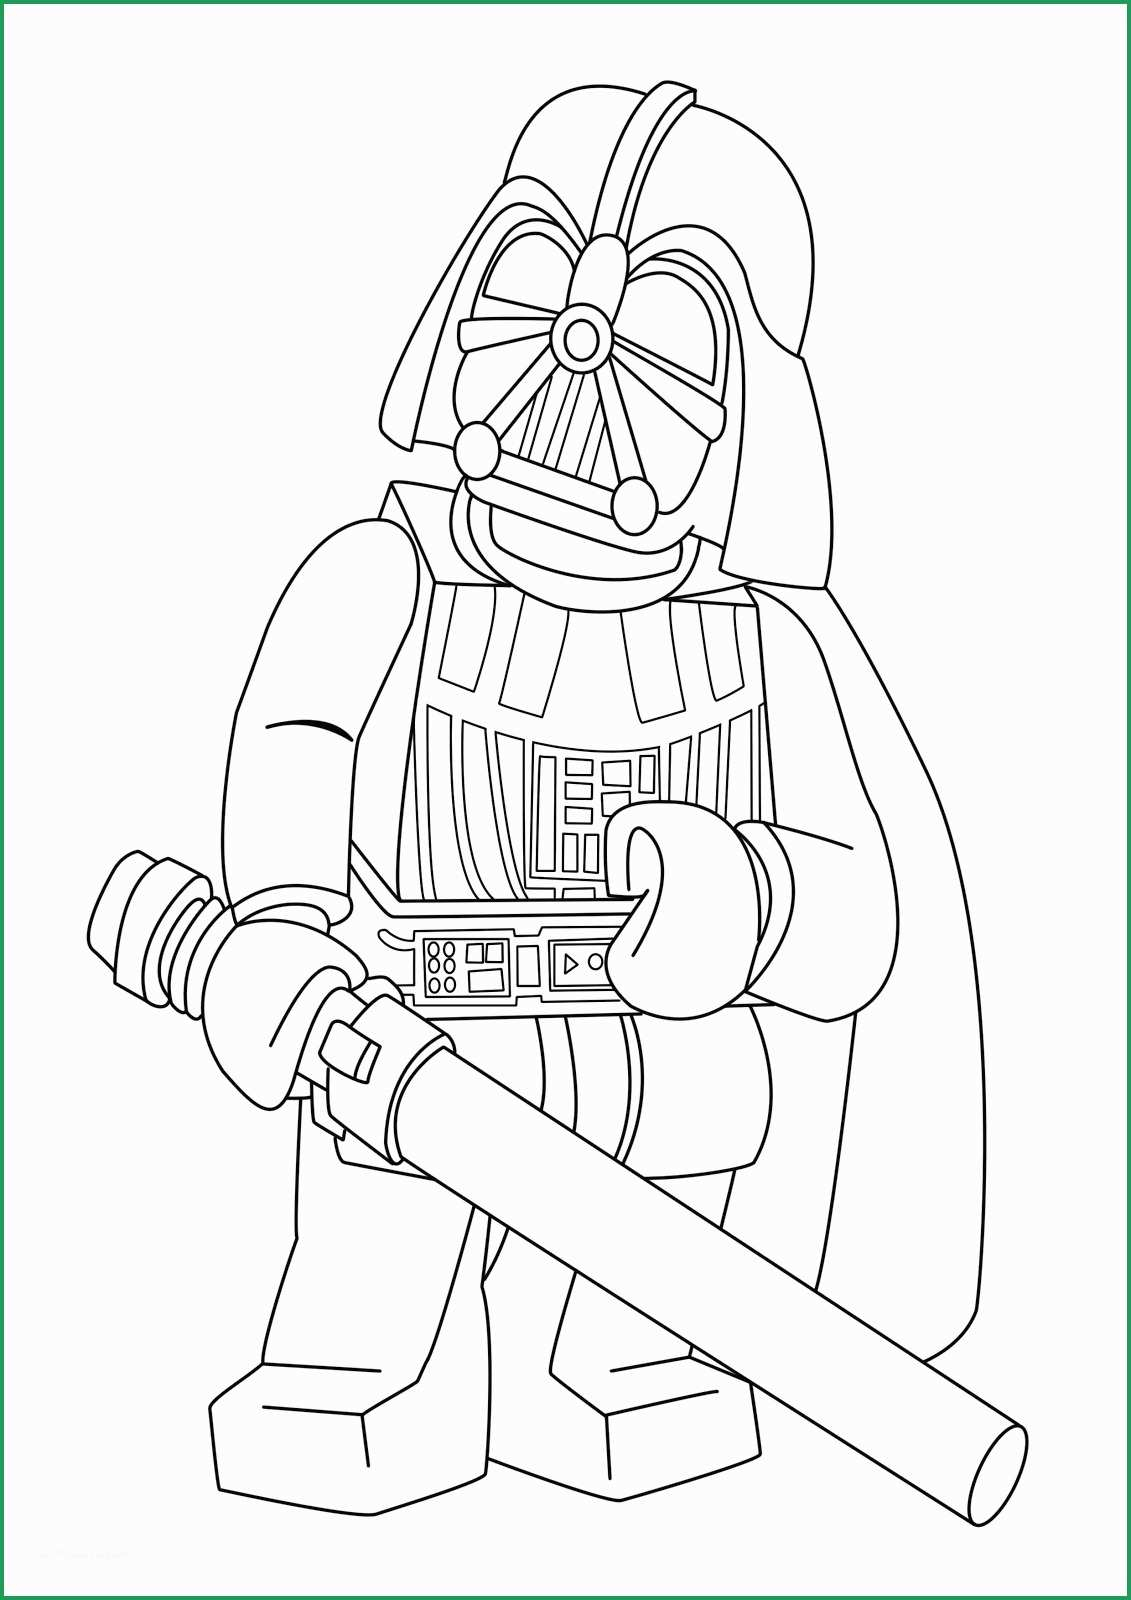 Free Star Wars Coloring Pages Starwars Coloring Pages Fresh Star Wars Coloring Pages Free